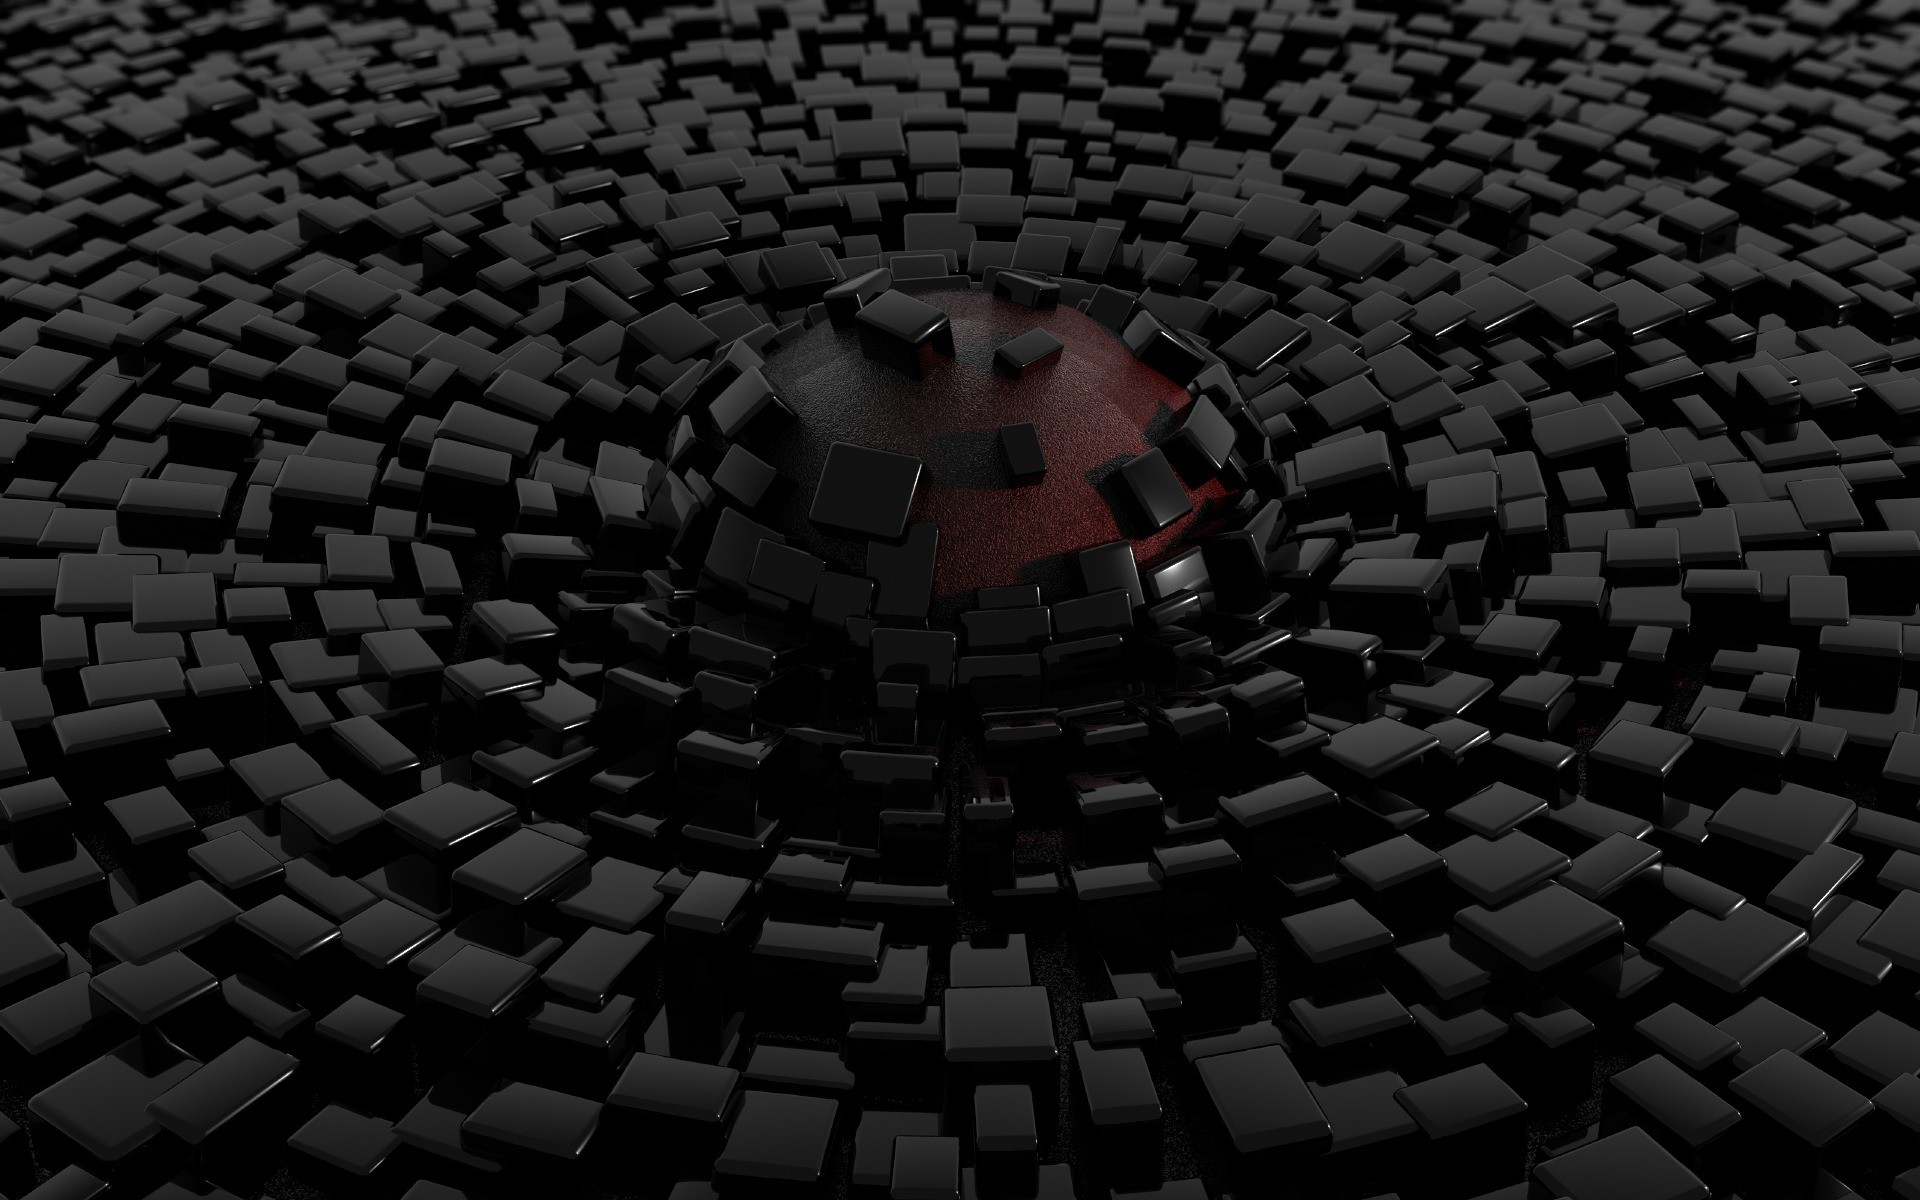 1920x1200 Awesome wallpaper of Wallpaper Sphere Lava In A Black Tiled Floor,  resolution 1280 x type Digital Art Photoshop Art Awesome, for Desktop of  your PC.